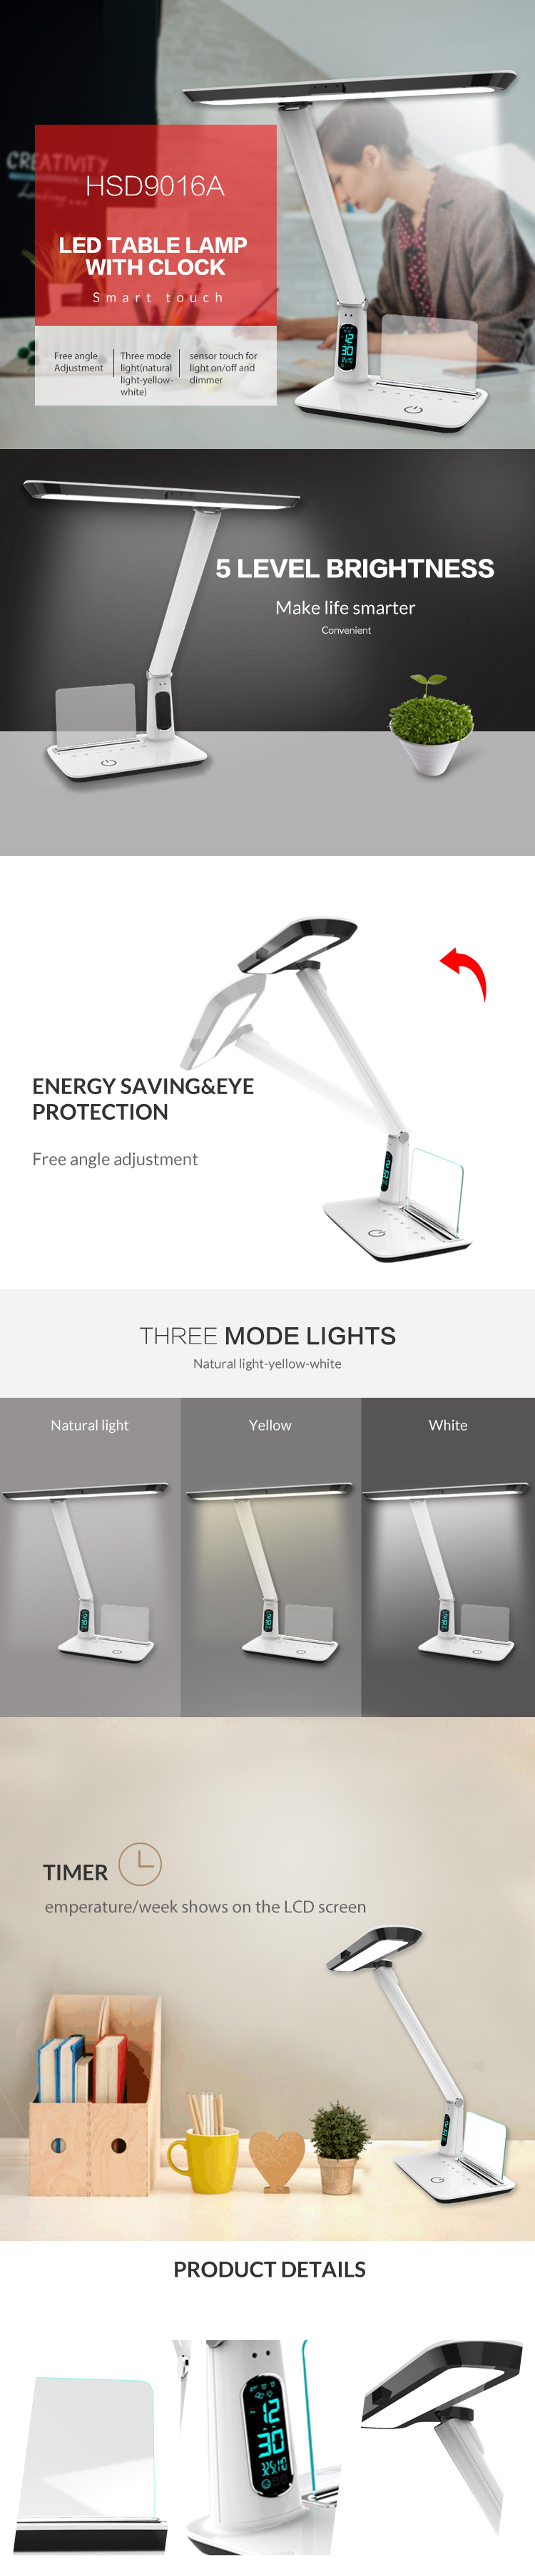 New arrival modern smart eye protect led reading lamp with clock and memo board